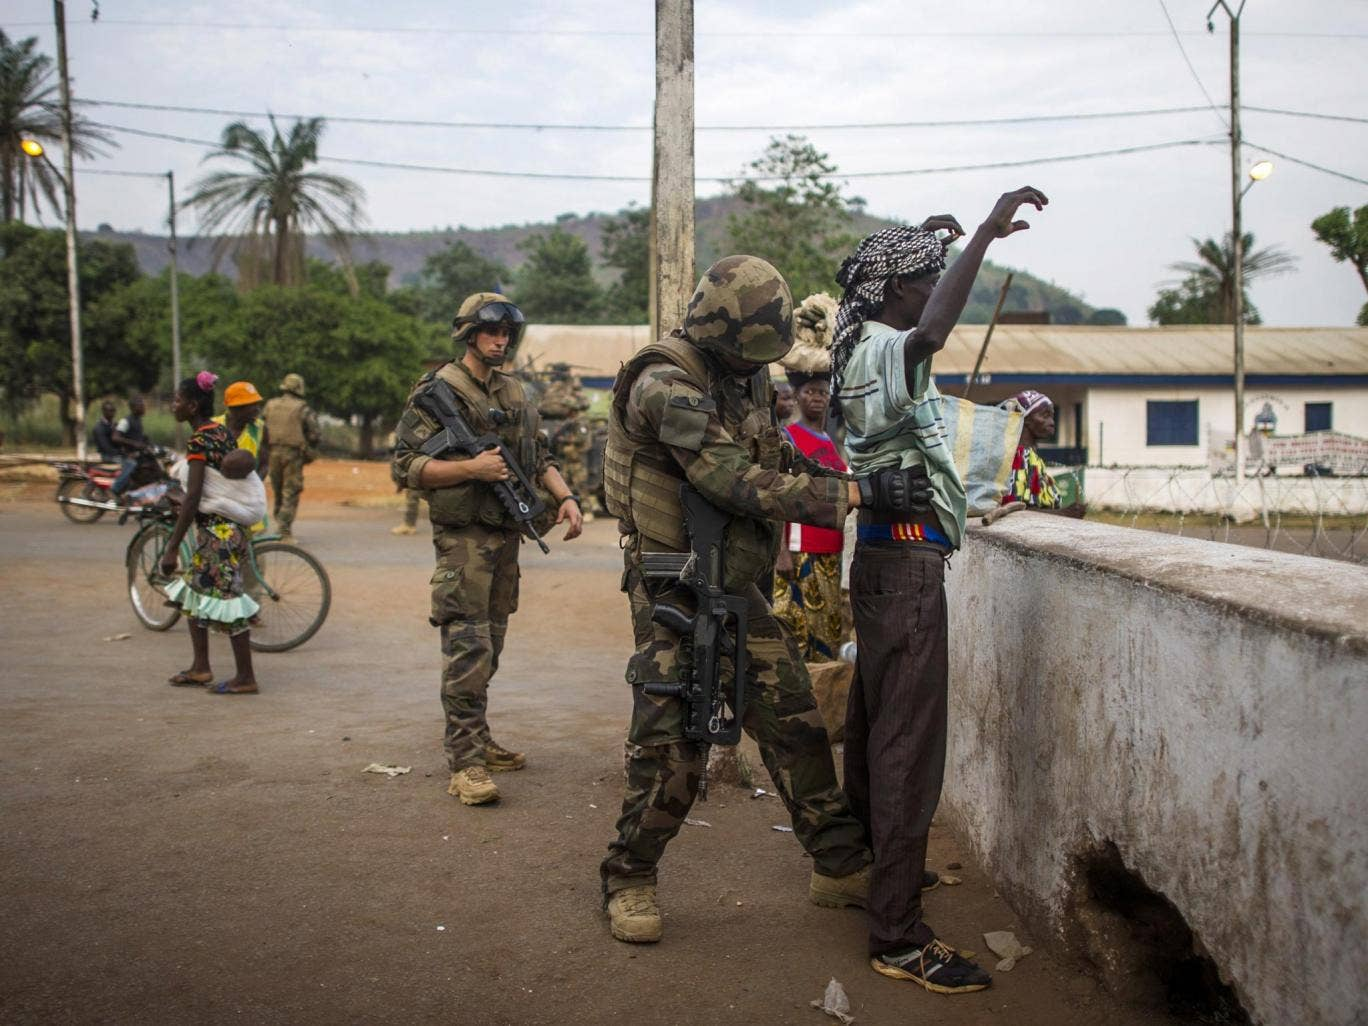 A French soldier frisks a man at a checkpoint in the PK12 district in Bangui, as Operation Sangaris continues